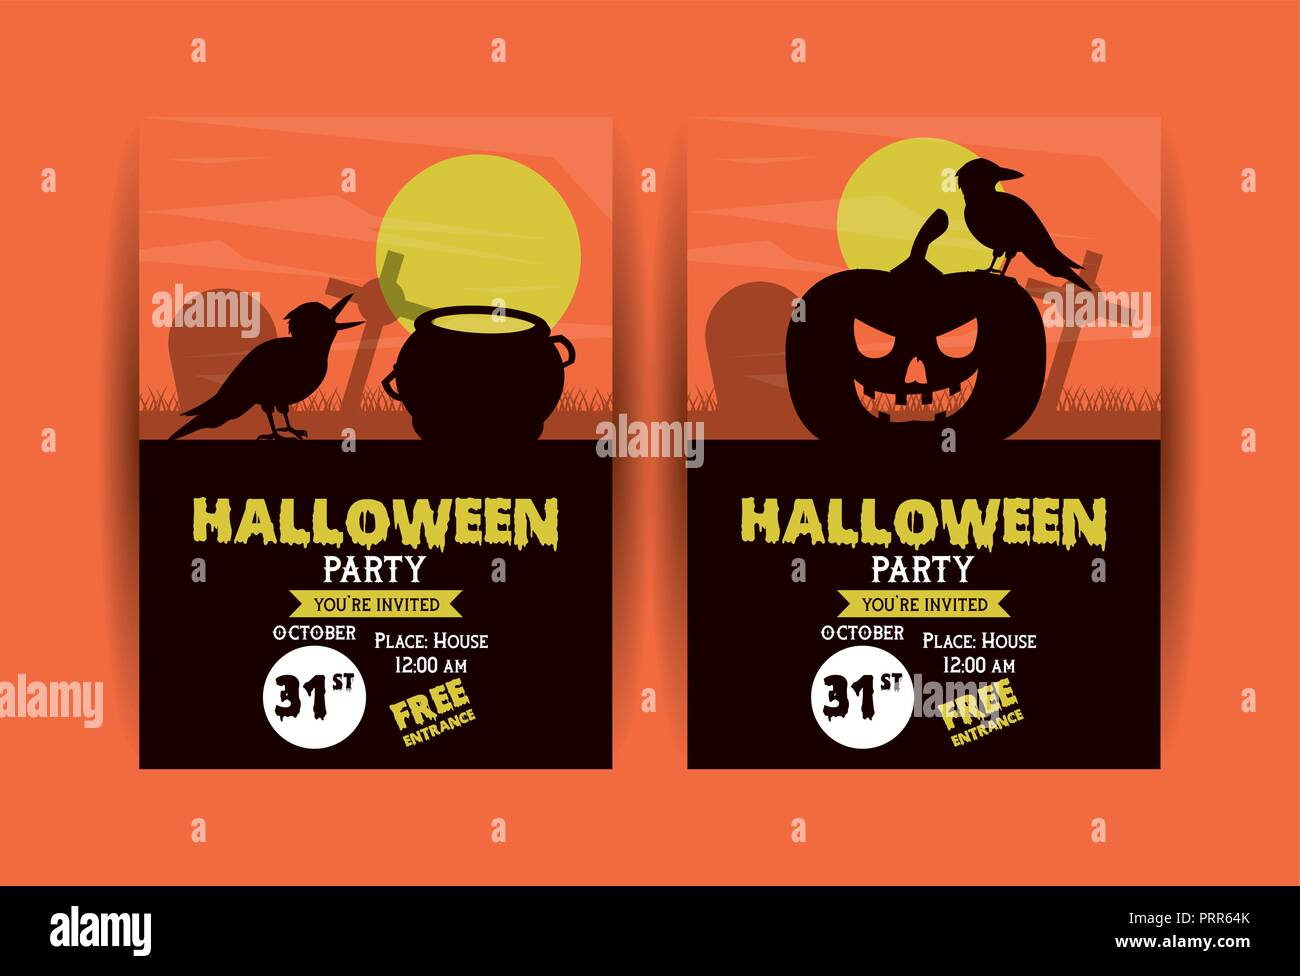 Set Of Halloween Party Invitation Cards Stock Vector Art